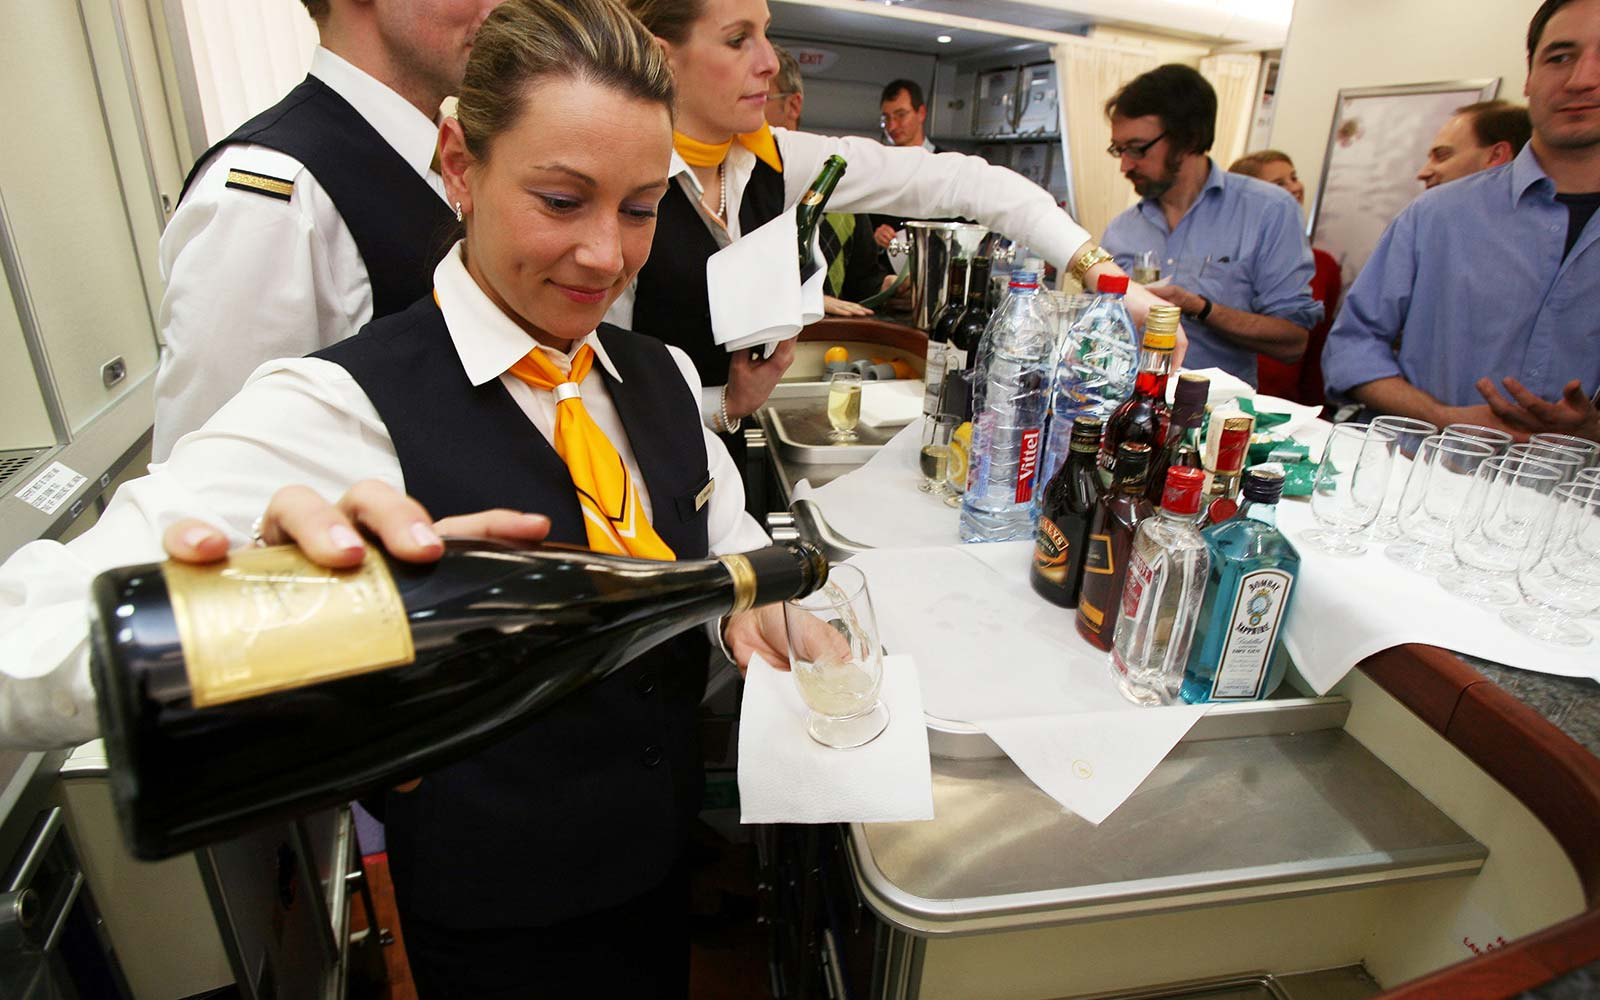 A flight attendant serves champagne on an Airbus A380 airpla